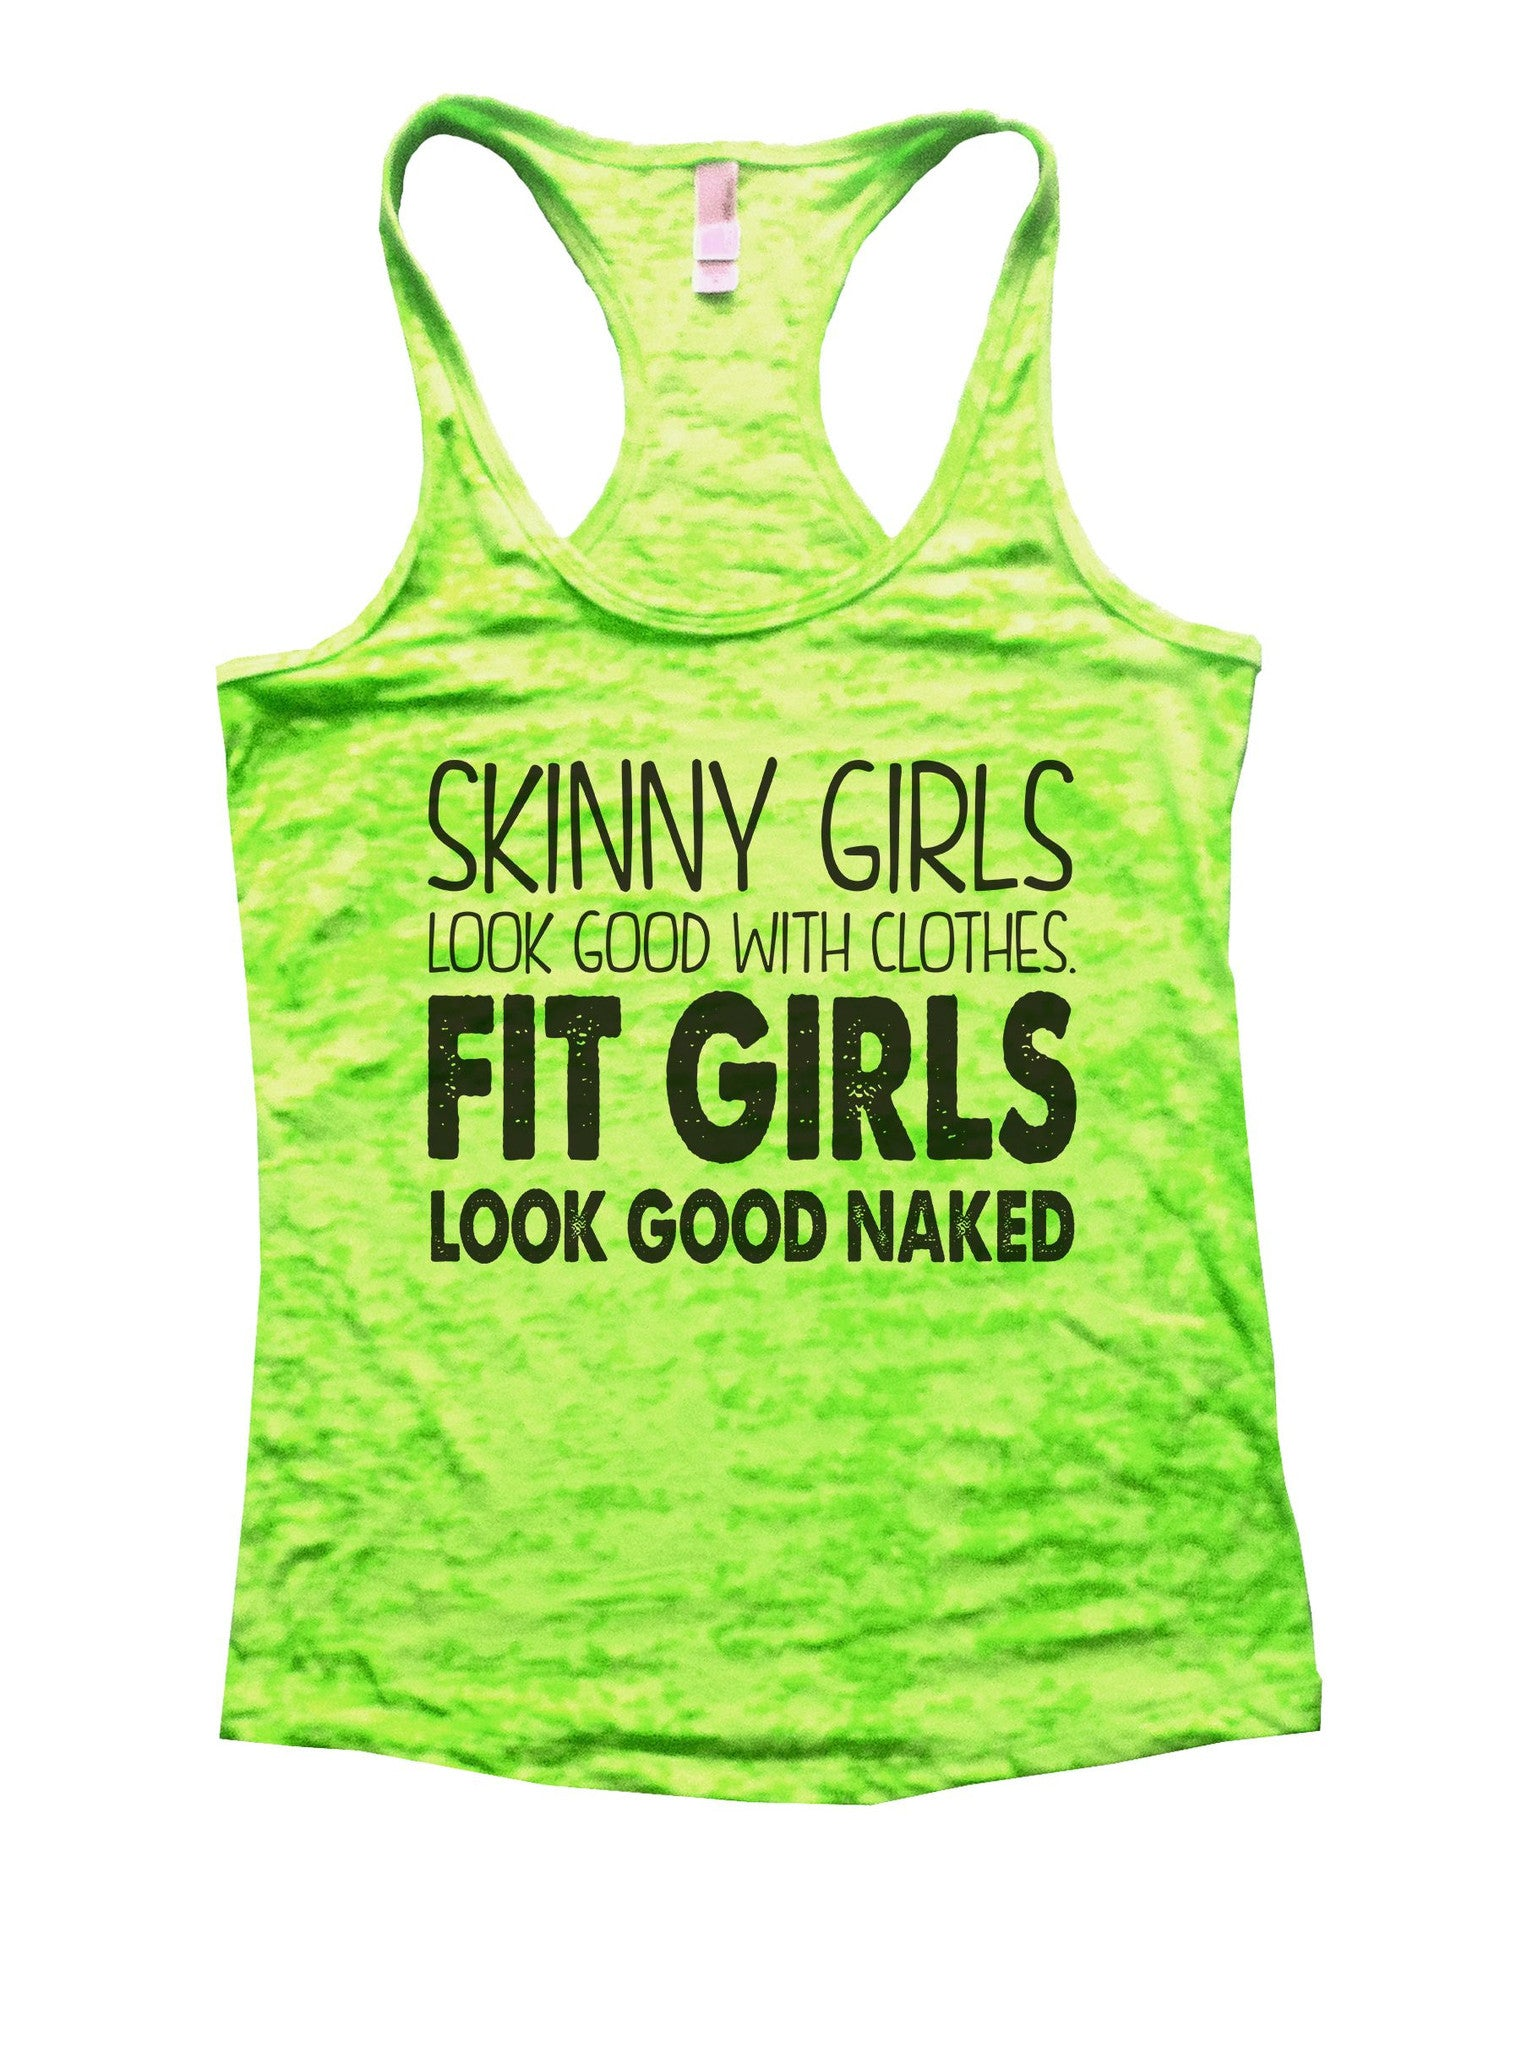 Skinny Girls Look Good With Clothes. Fit Girls Look Good Naked Burnout Tank Top By BurnoutTankTops.com - 916 - Funny Shirts Tank Tops Burnouts and Triblends  - 3